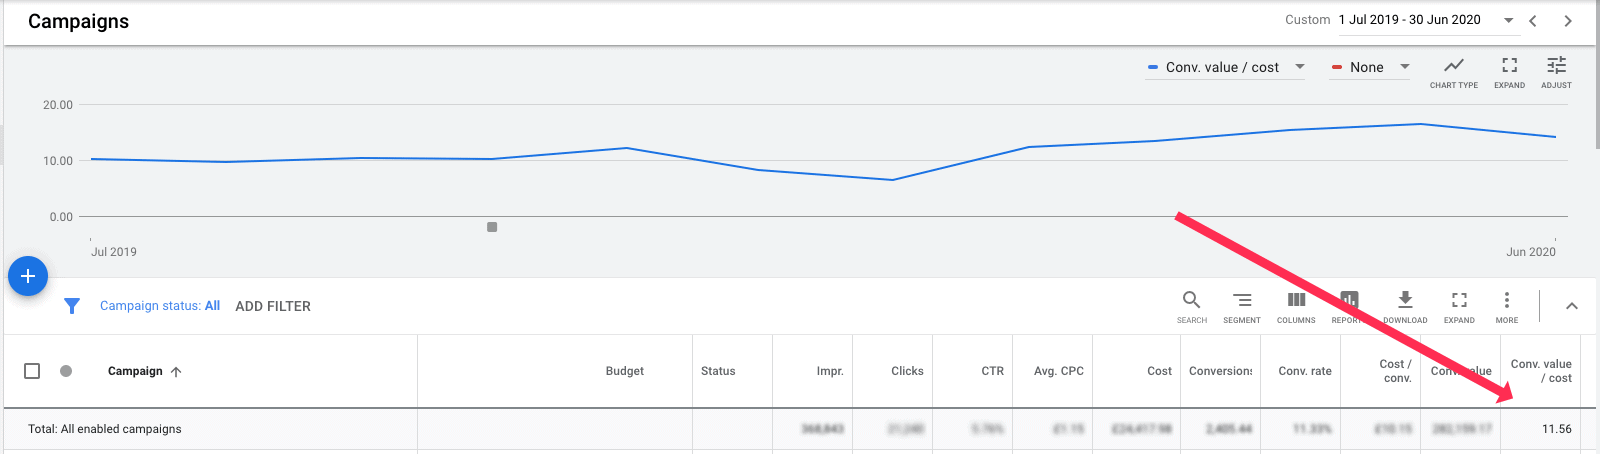 Google Ads eCommerce Results